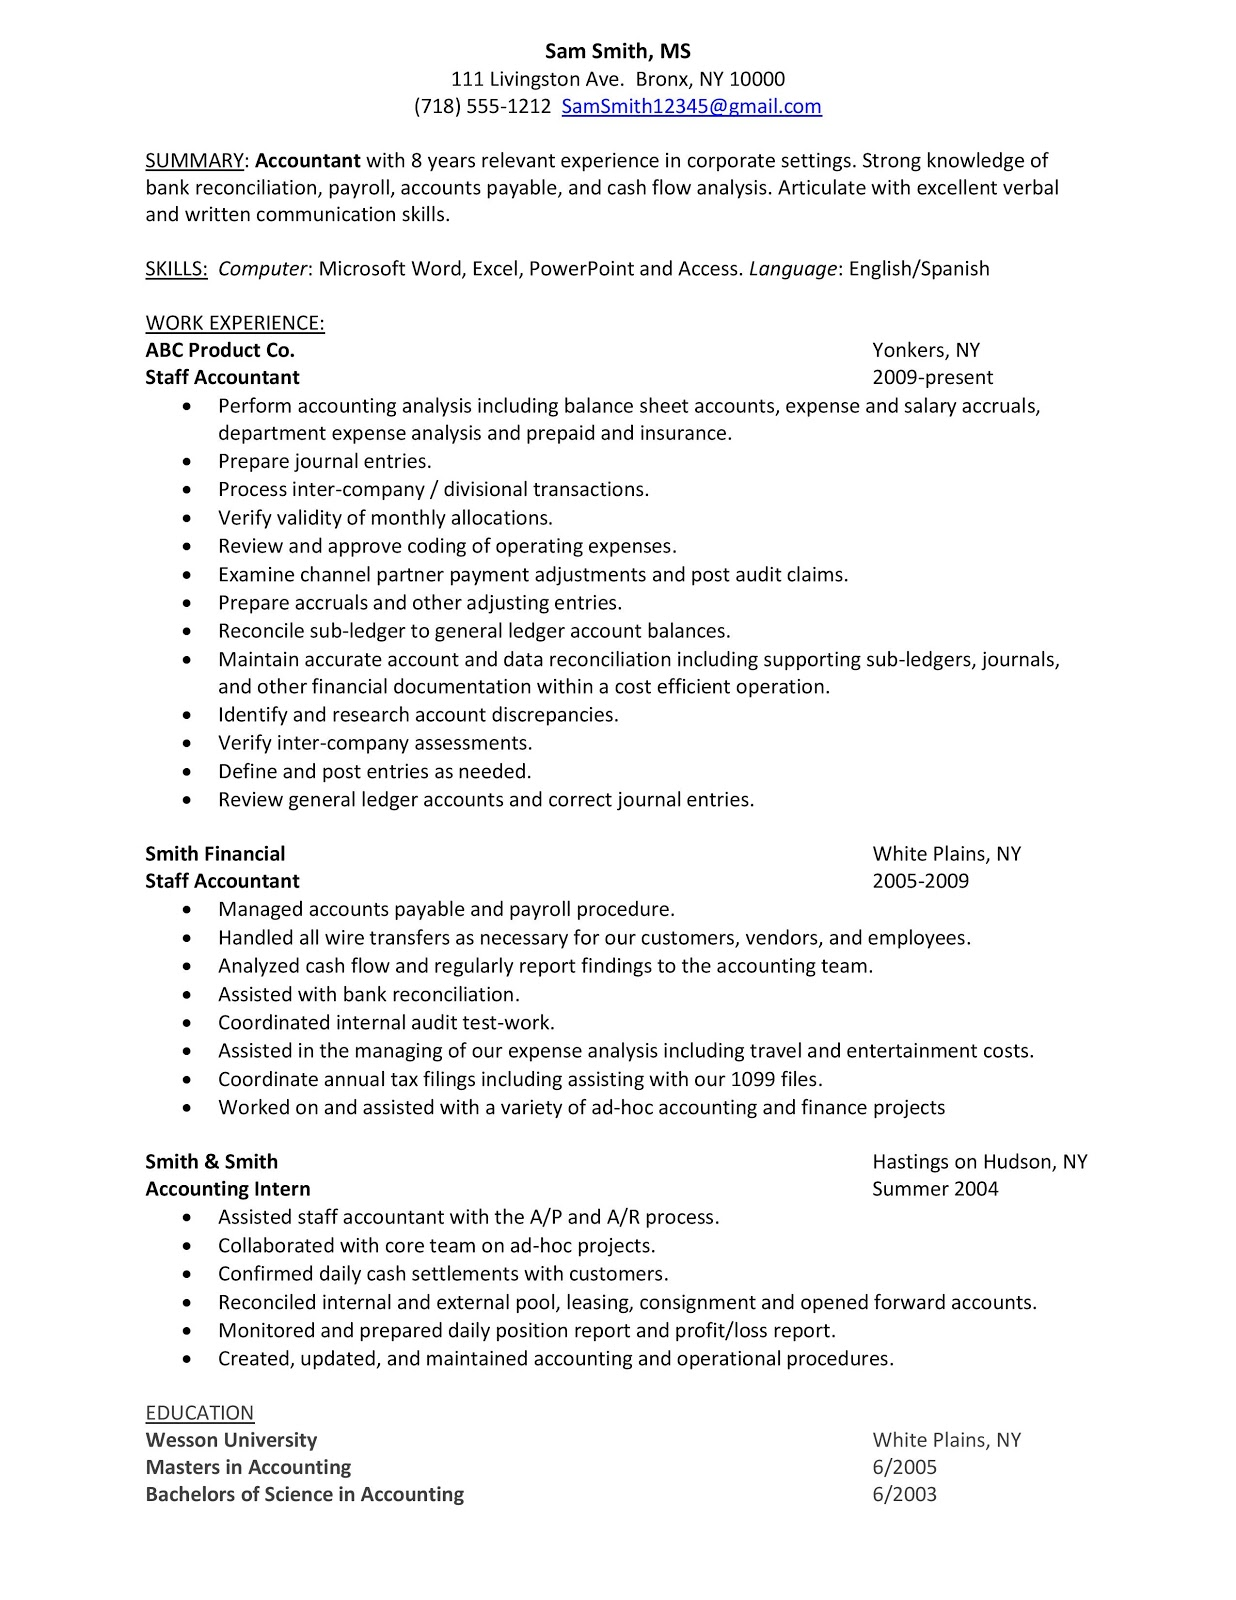 Sample Resume: Staff Accountant  How To Complete A Resume